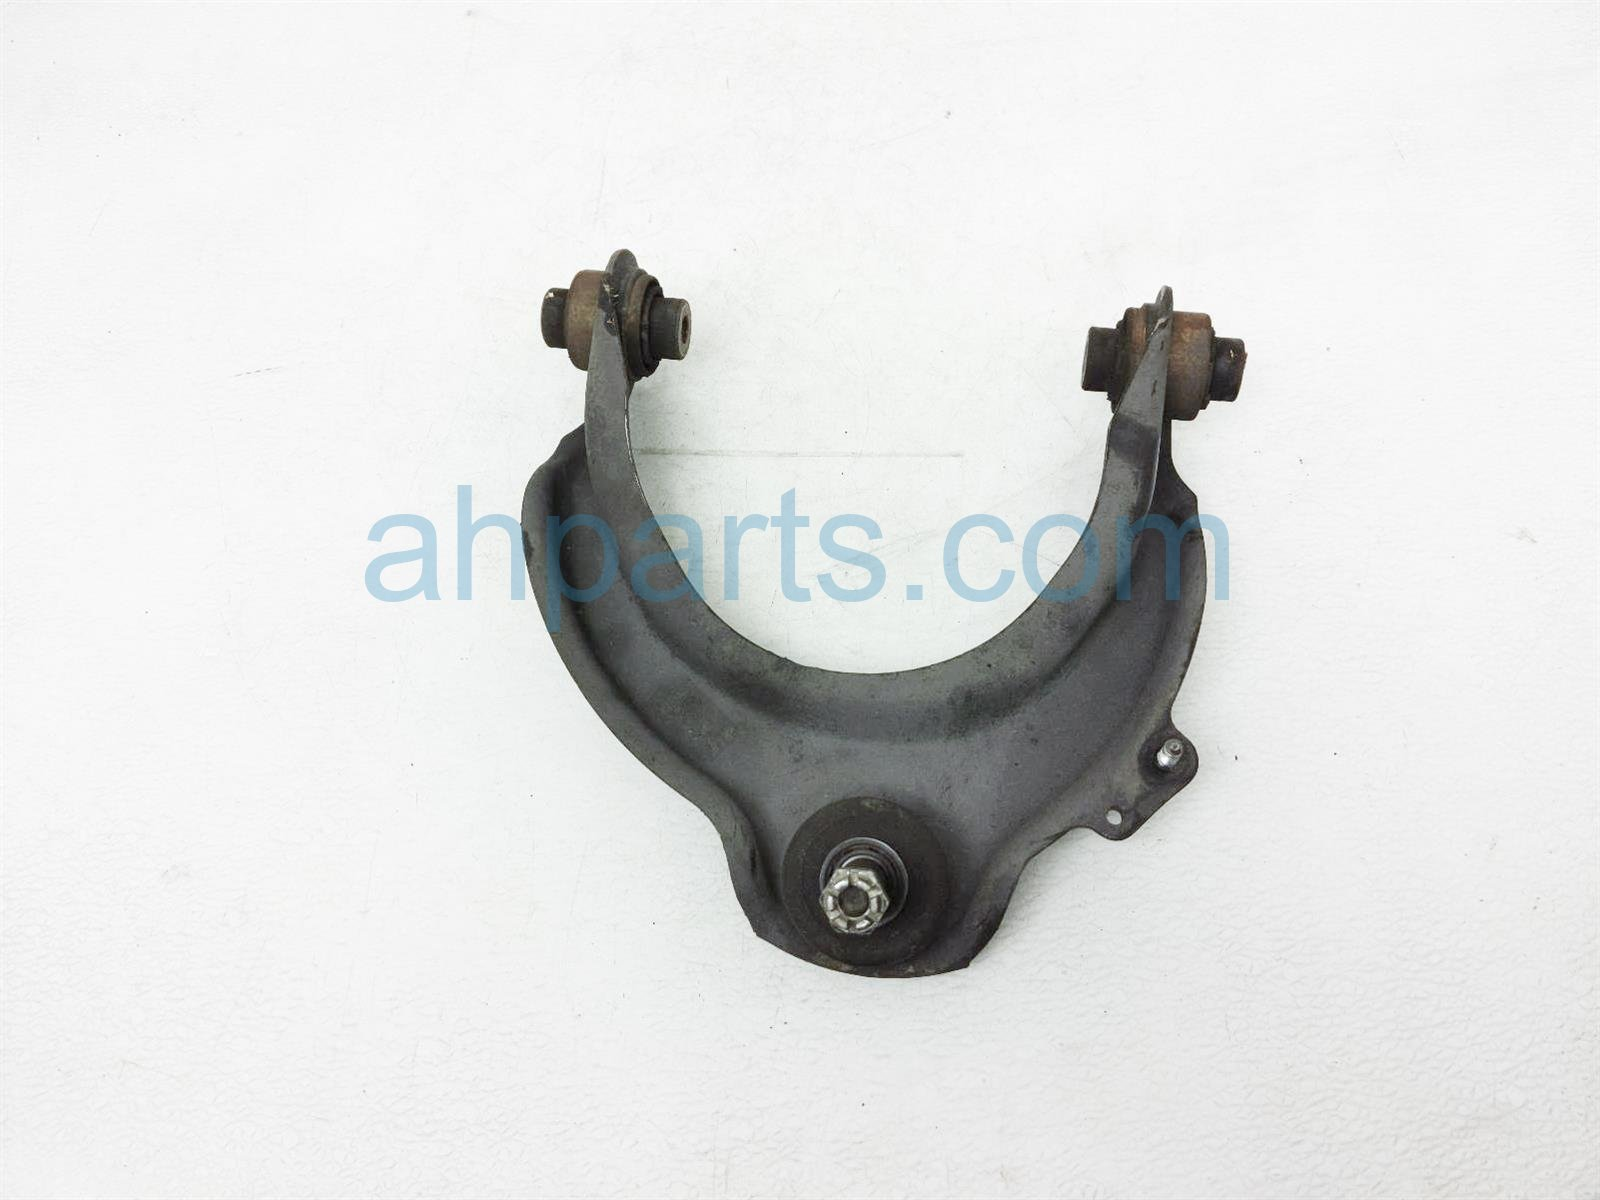 2007 Honda Accord Front Passenger Upper Control Arm 51450 SDA A13 Replacement